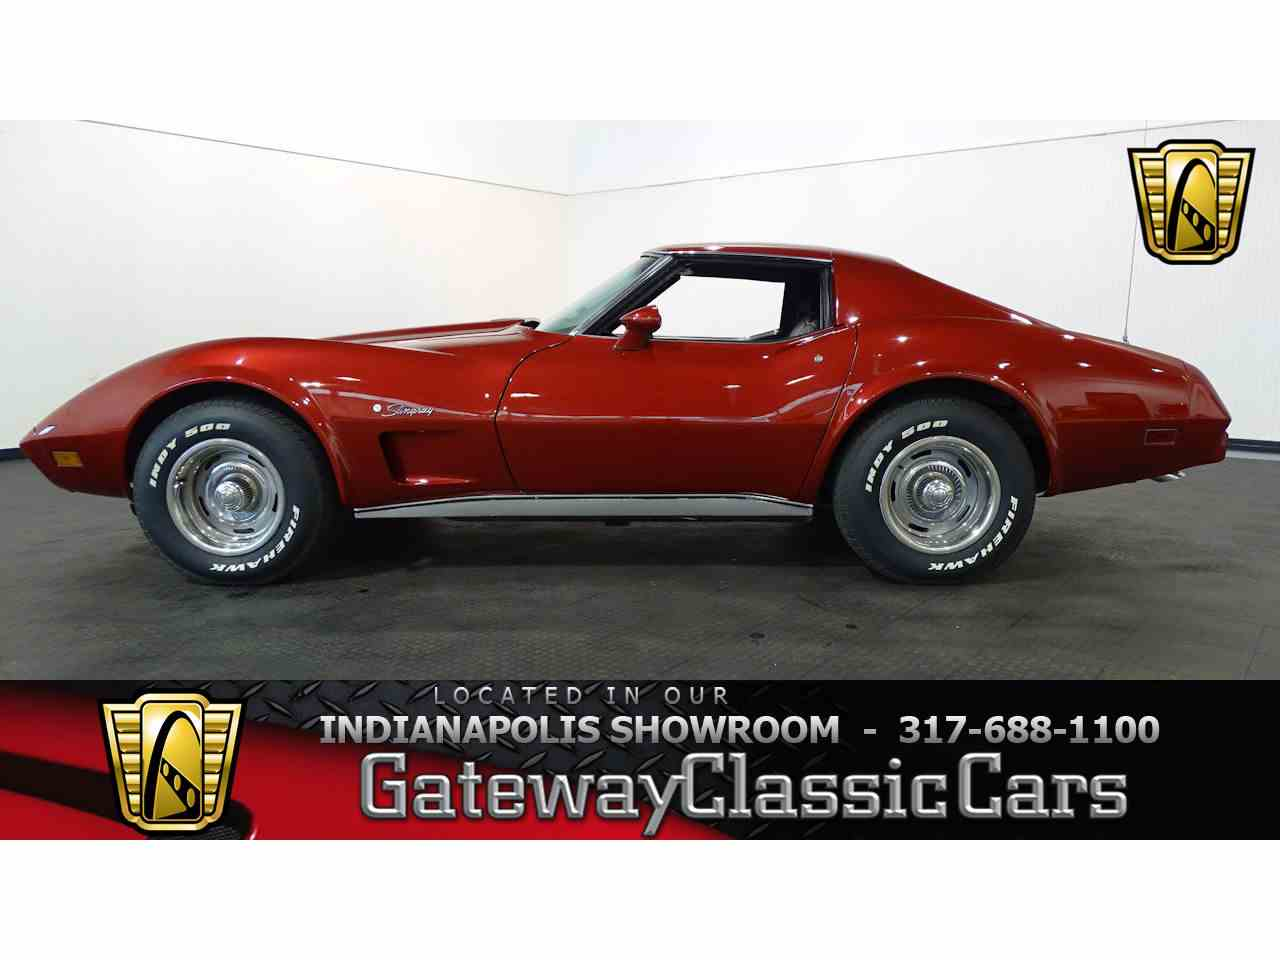 Large Picture of '76 Corvette located in Indianapolis Indiana - $20,595.00 Offered by Gateway Classic Cars - Indianapolis - MD8J